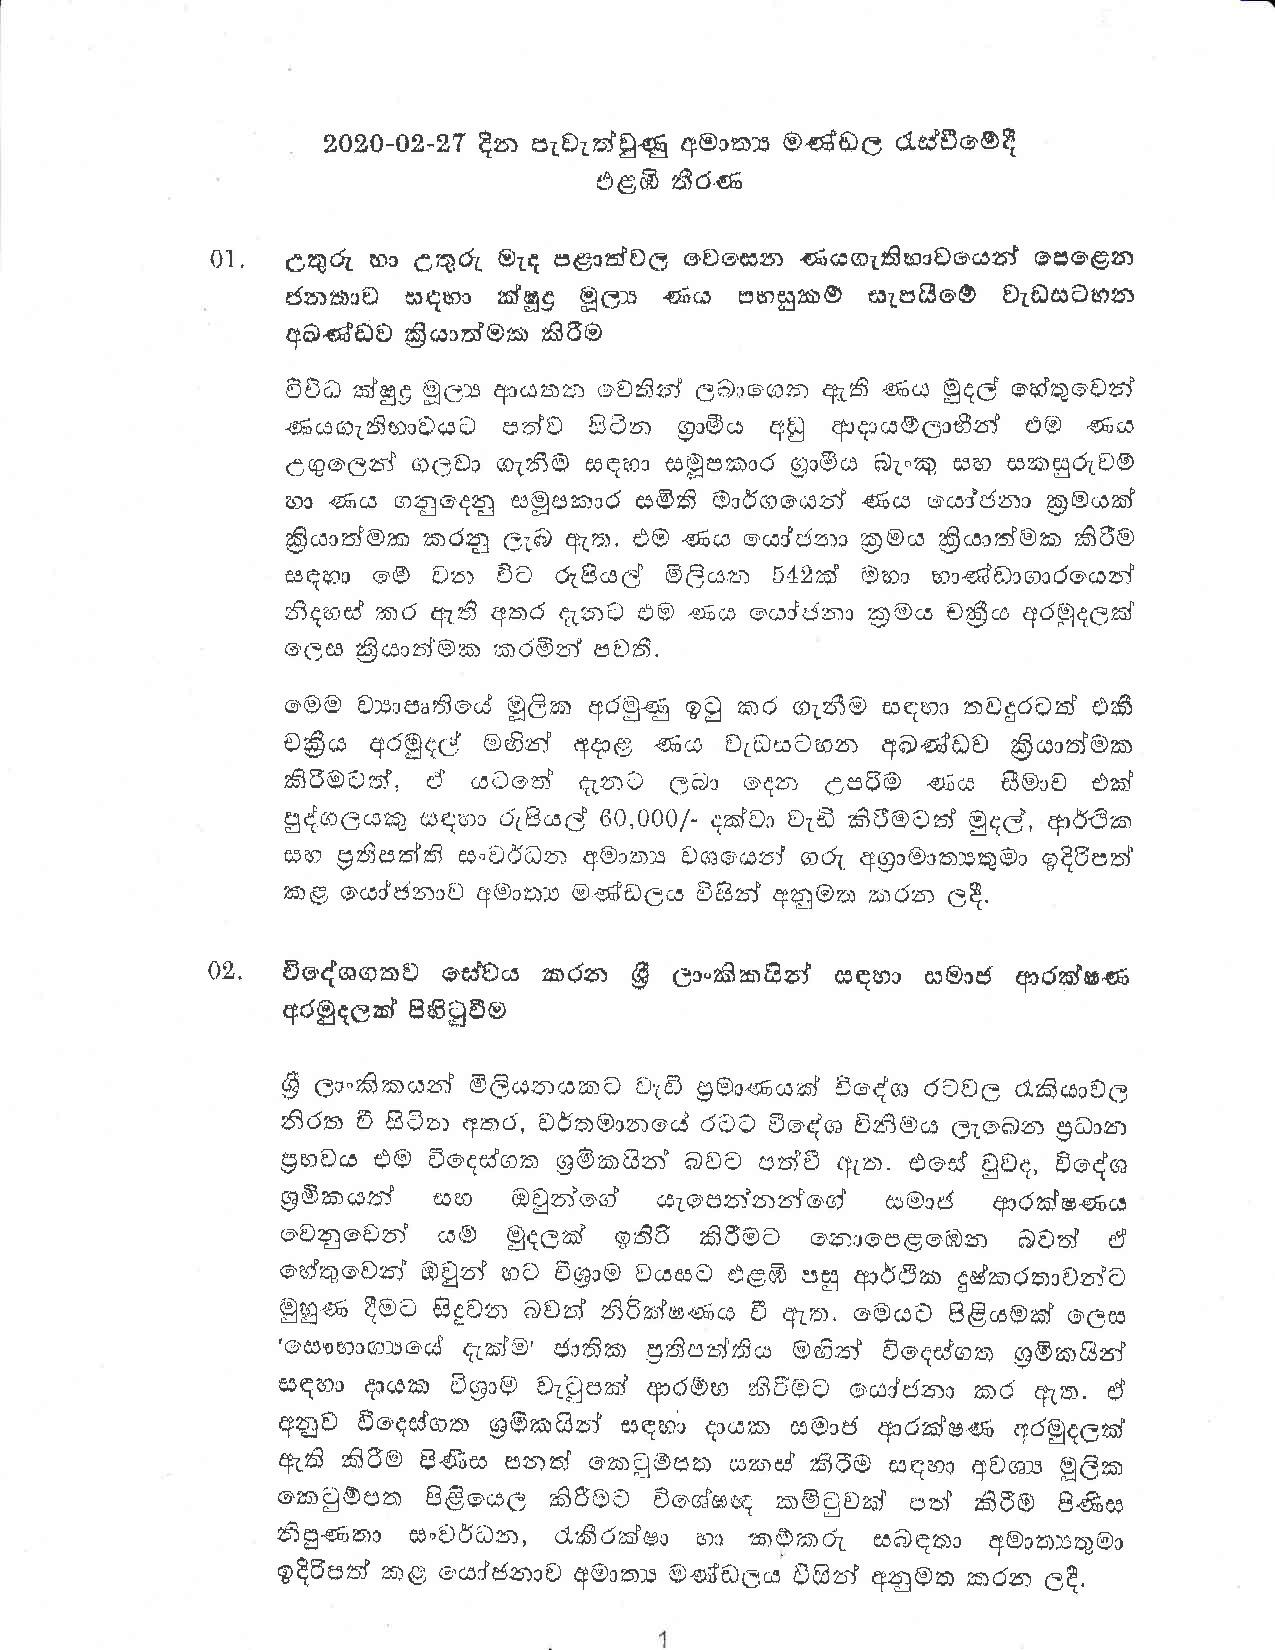 Cabinet Decision on 27.02.2020 page 001